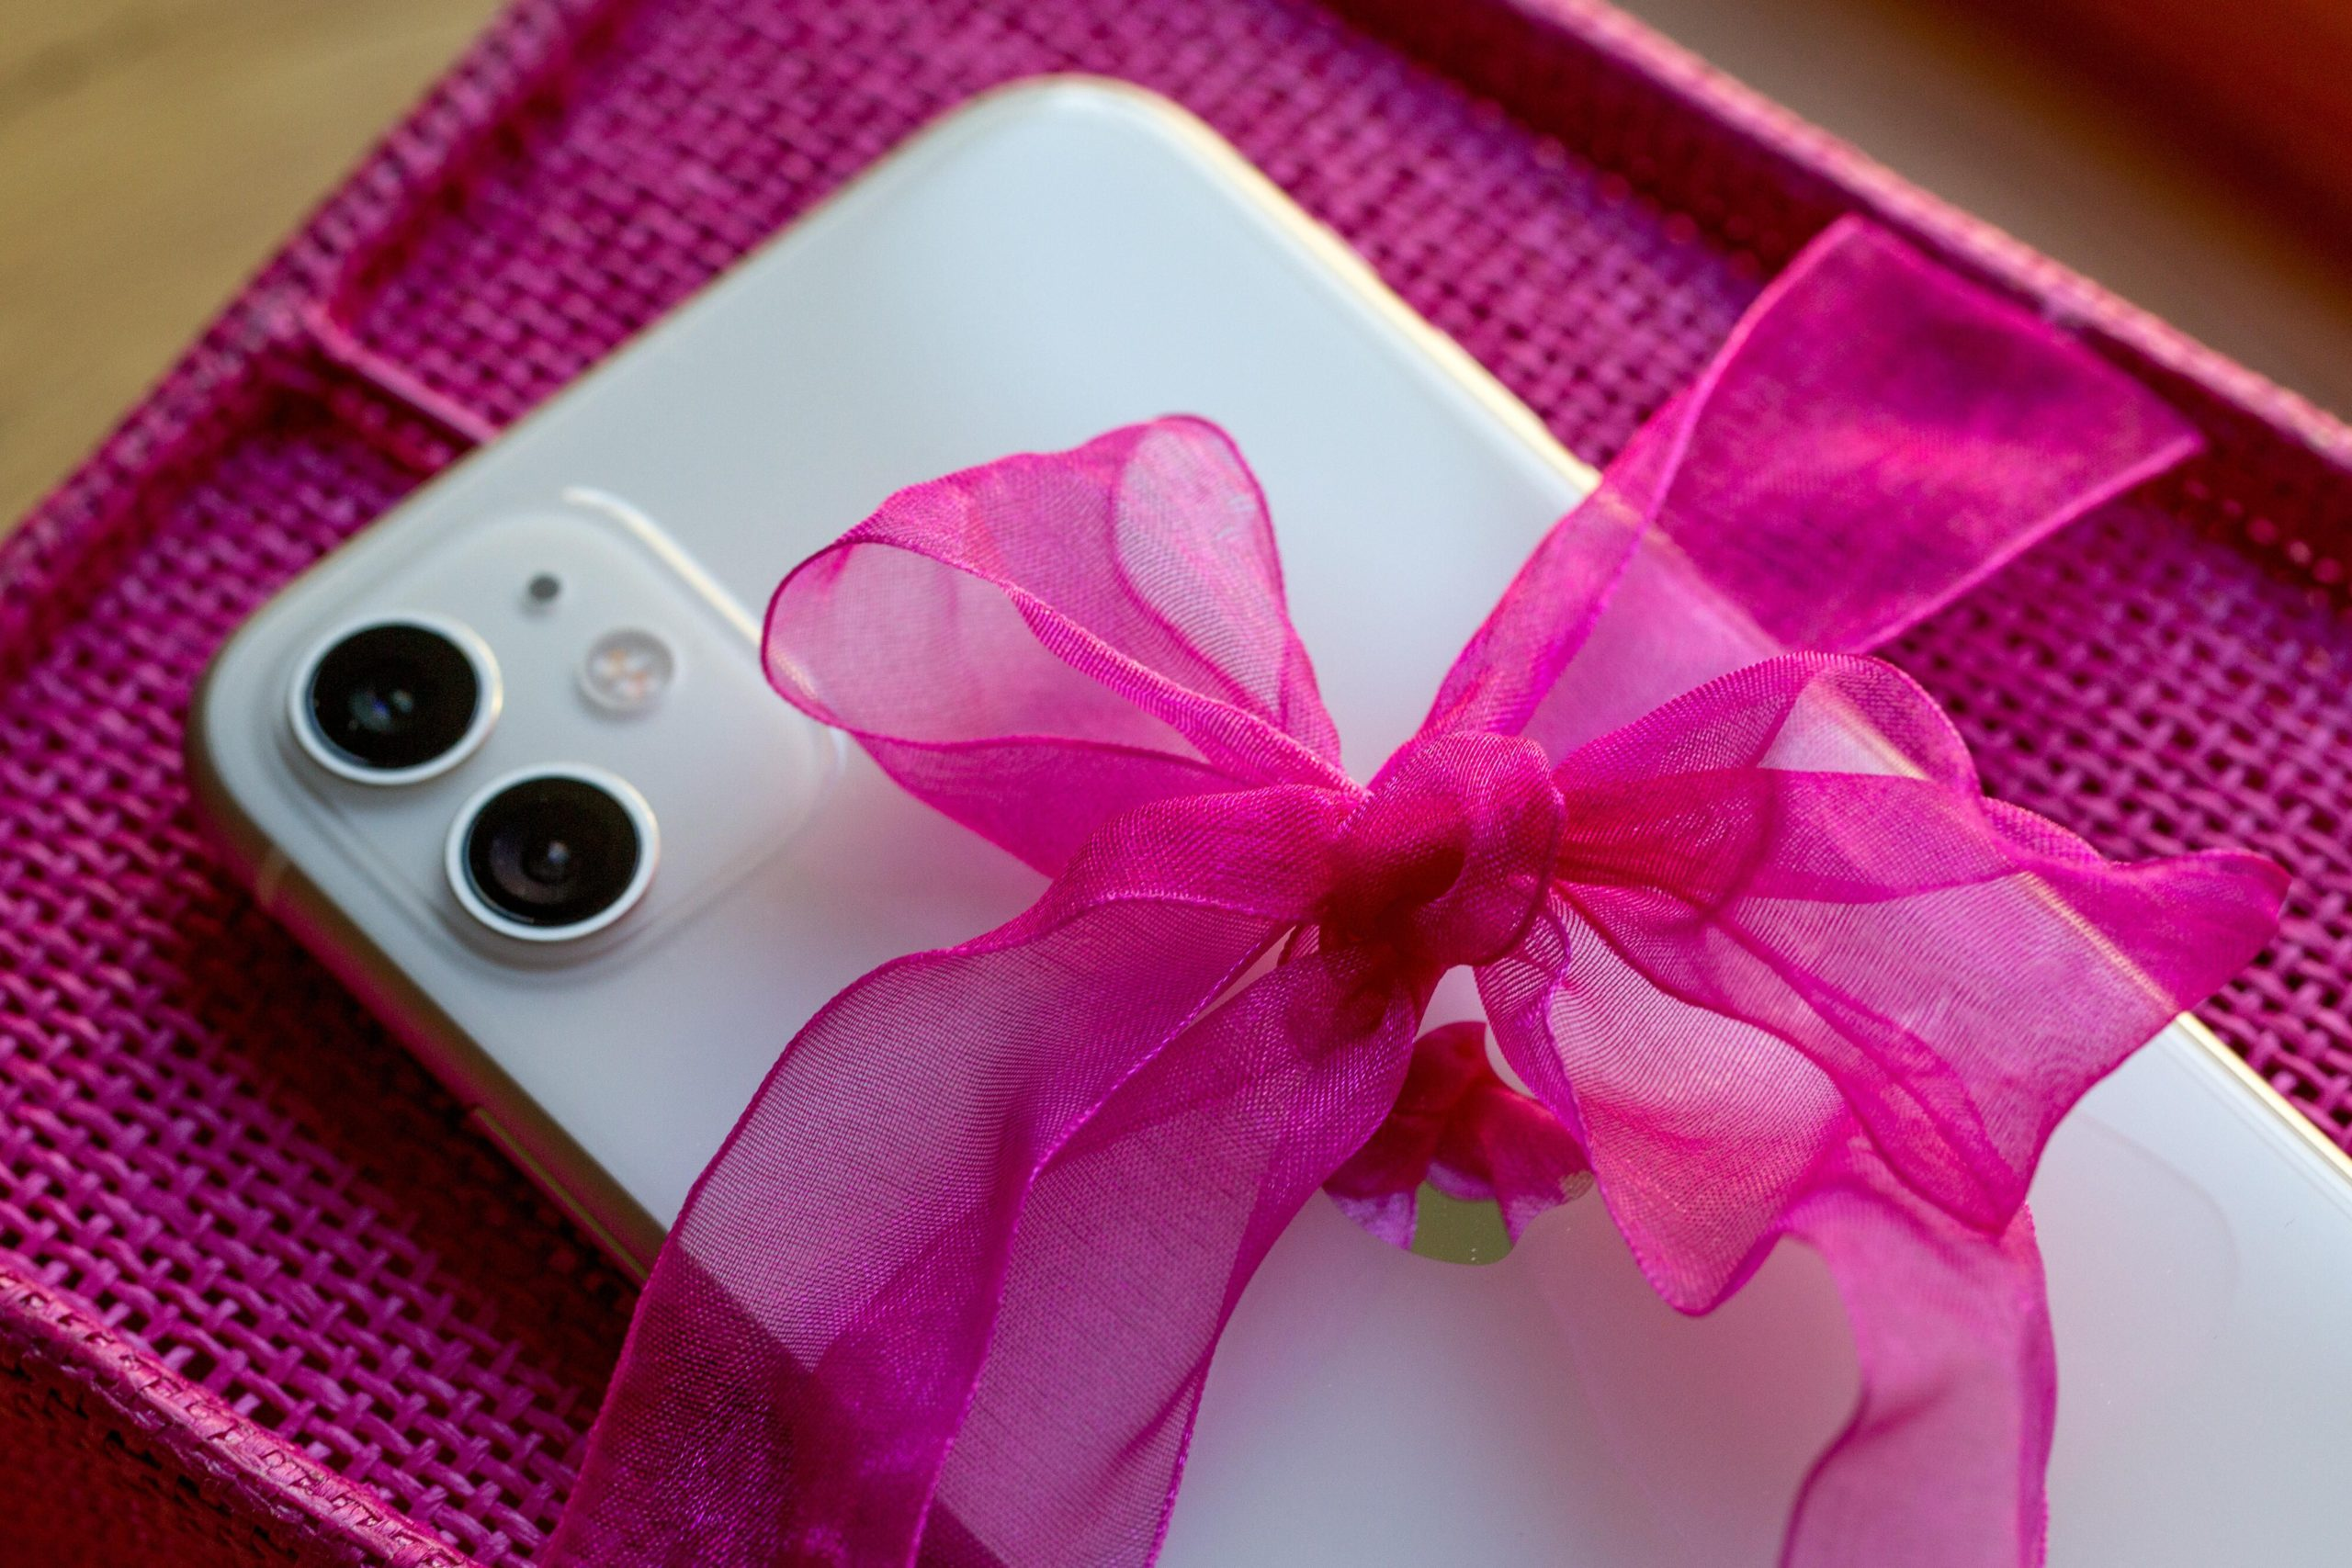 Black Friday: 6 rules you need to follow when buying phone and gadget gifts